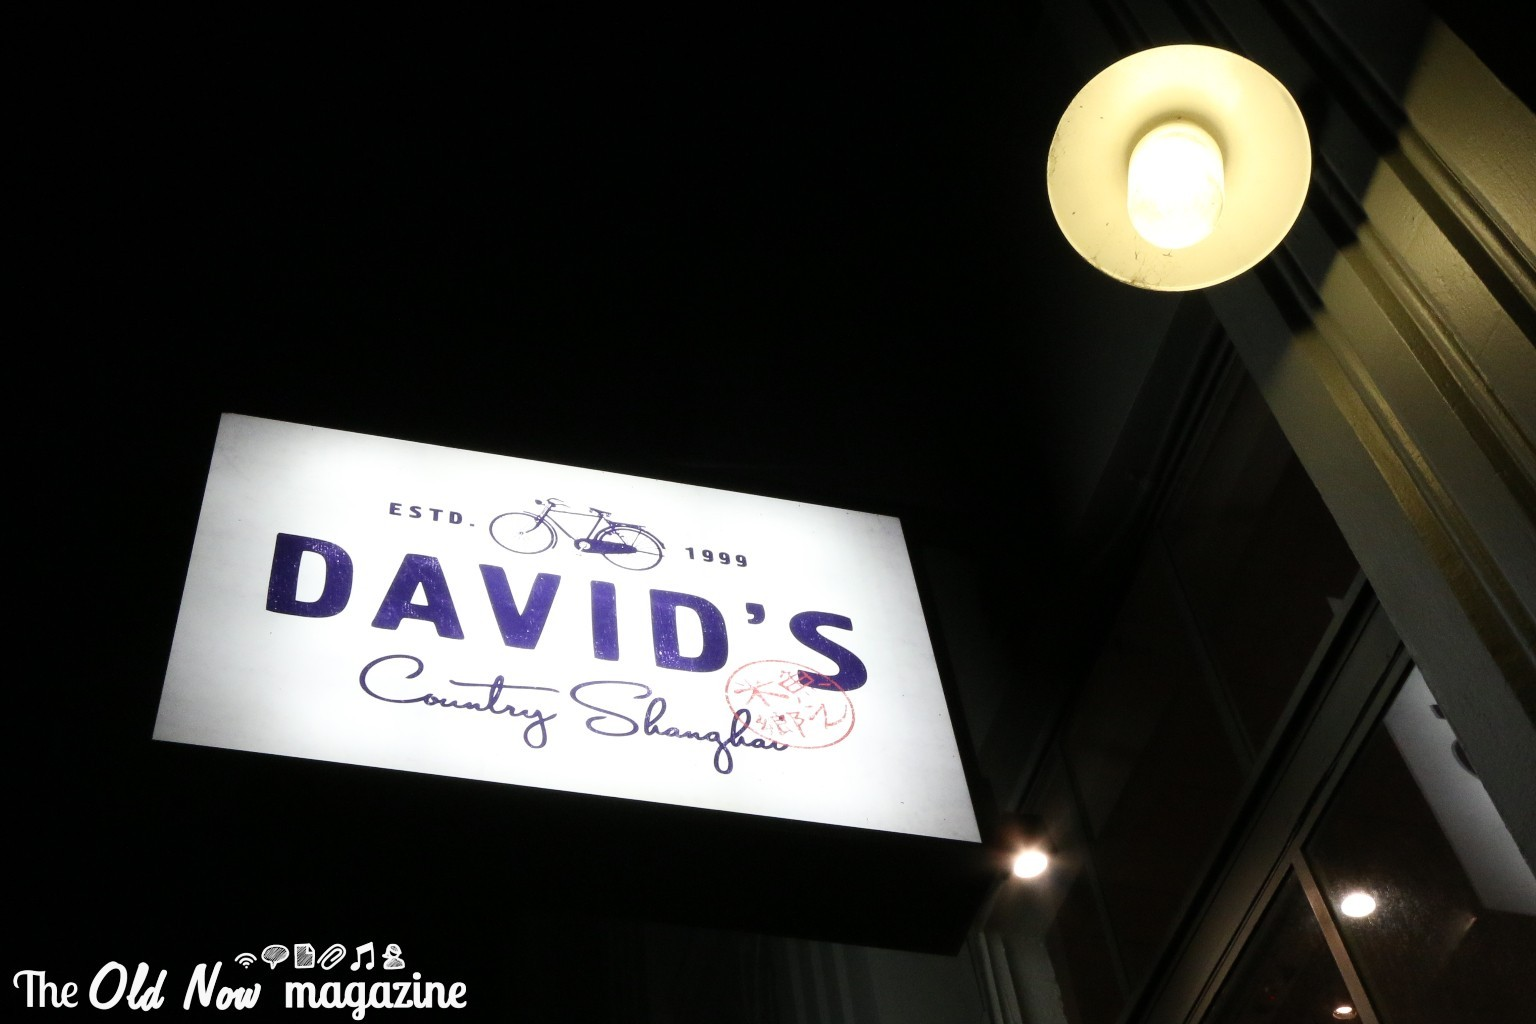 DAVID'S Country Shangai THEOLDNOW (3)